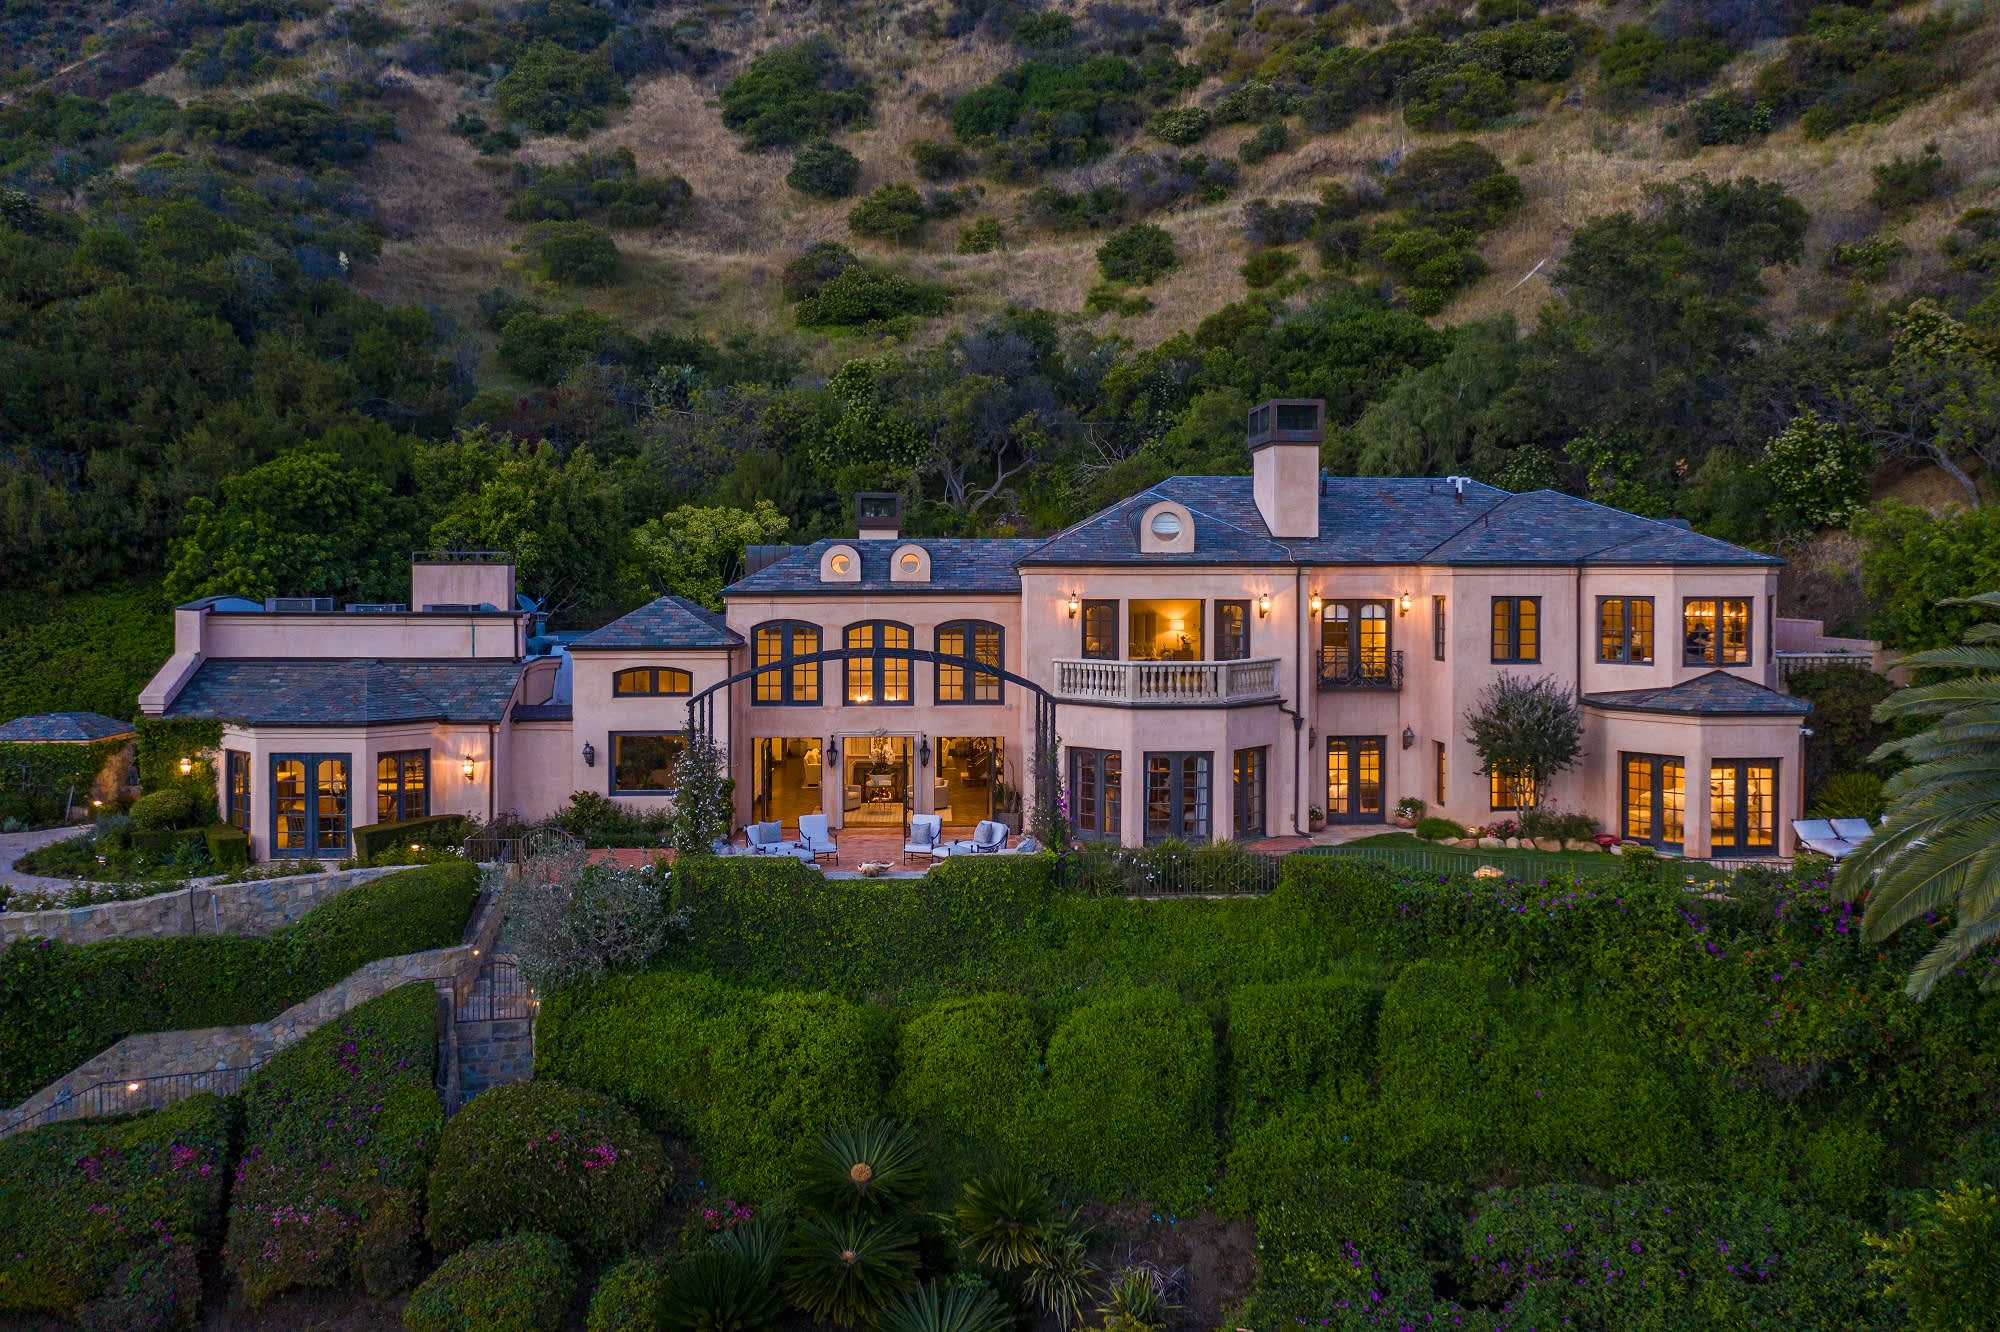 Kelsey Grammer's former Malibu compound is on sale for $19.95 million — take a look inside